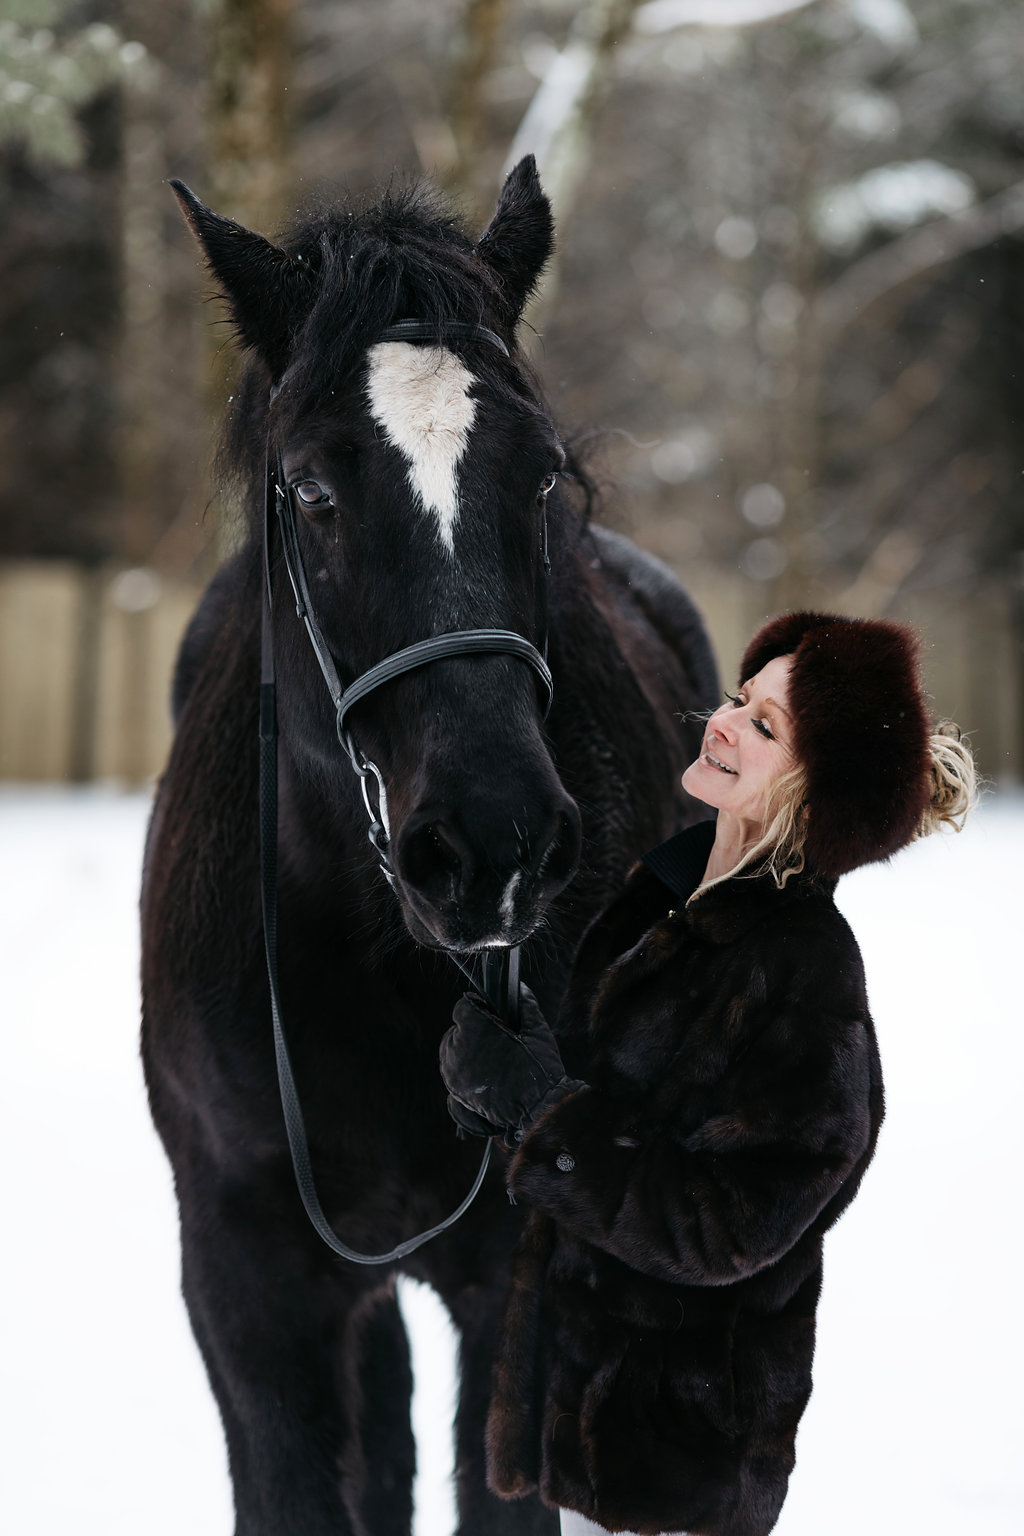 PURE member Darcel McDonald and her horse outside of her home in Wausau, Wisconsin.